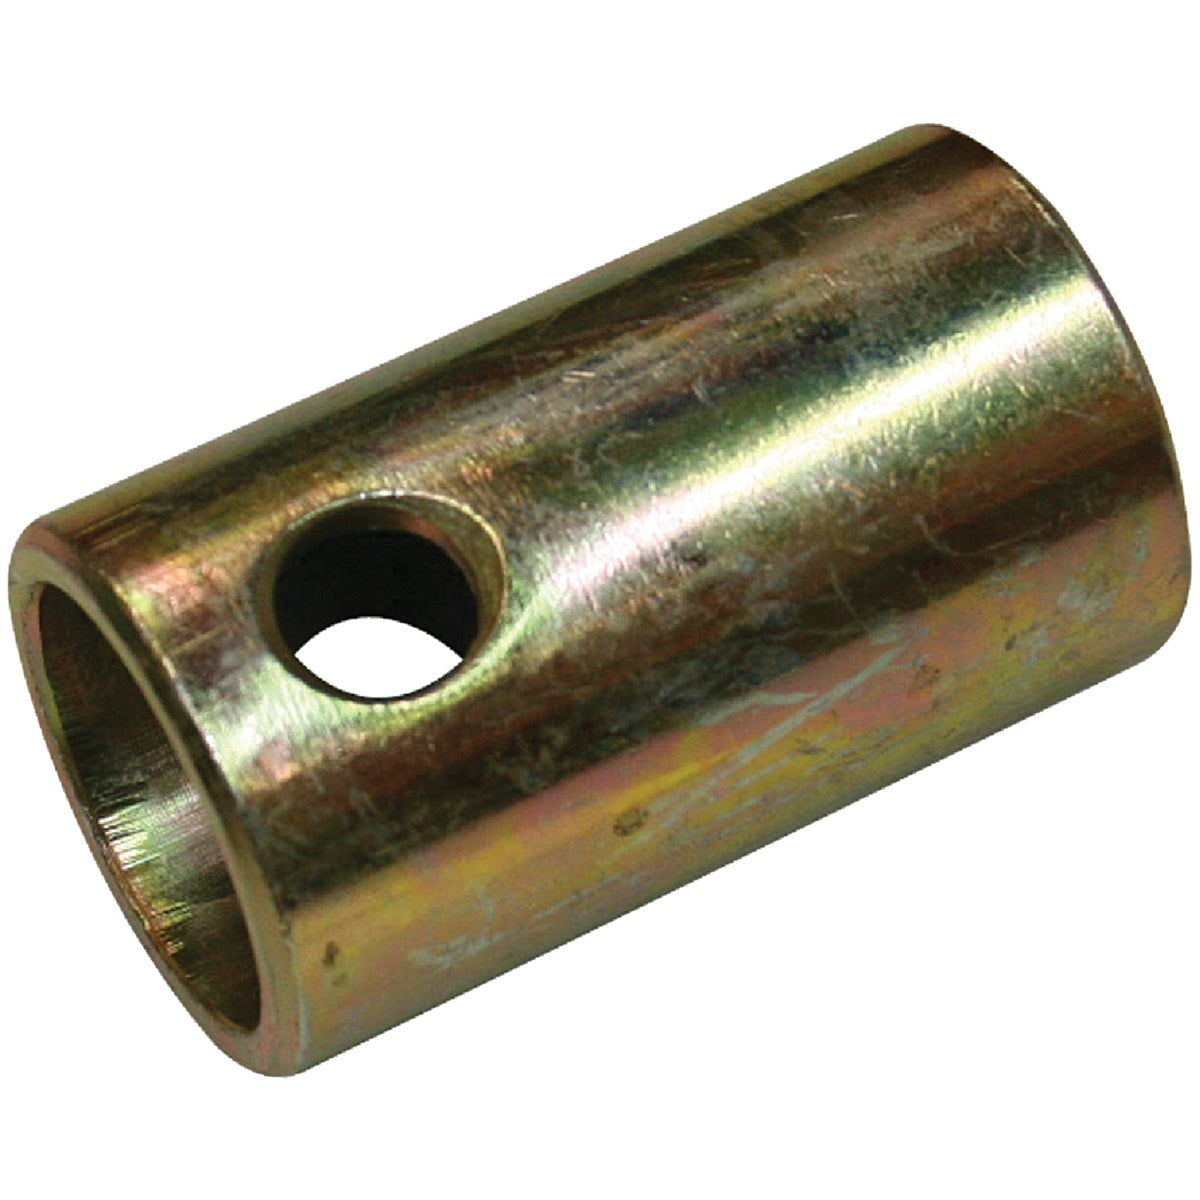 LIFT ARM REDUCNG BUSHING